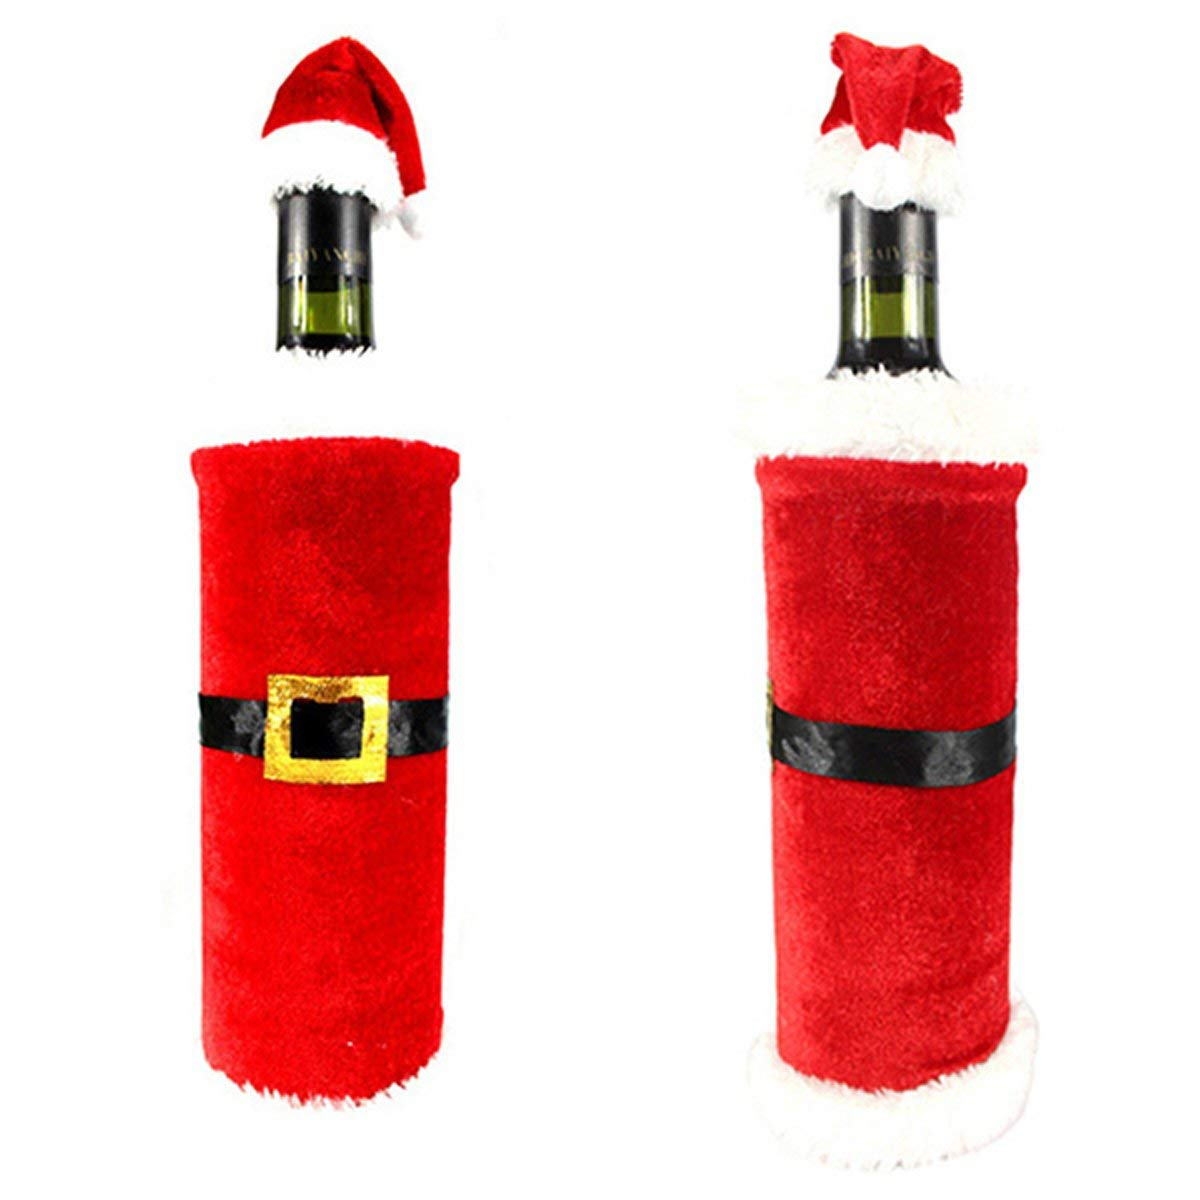 Xeminor Premium Santa Christmas Wine Bottle Cover Gift Wrap Christmas Party Decorations Home Wine Bottle Decor